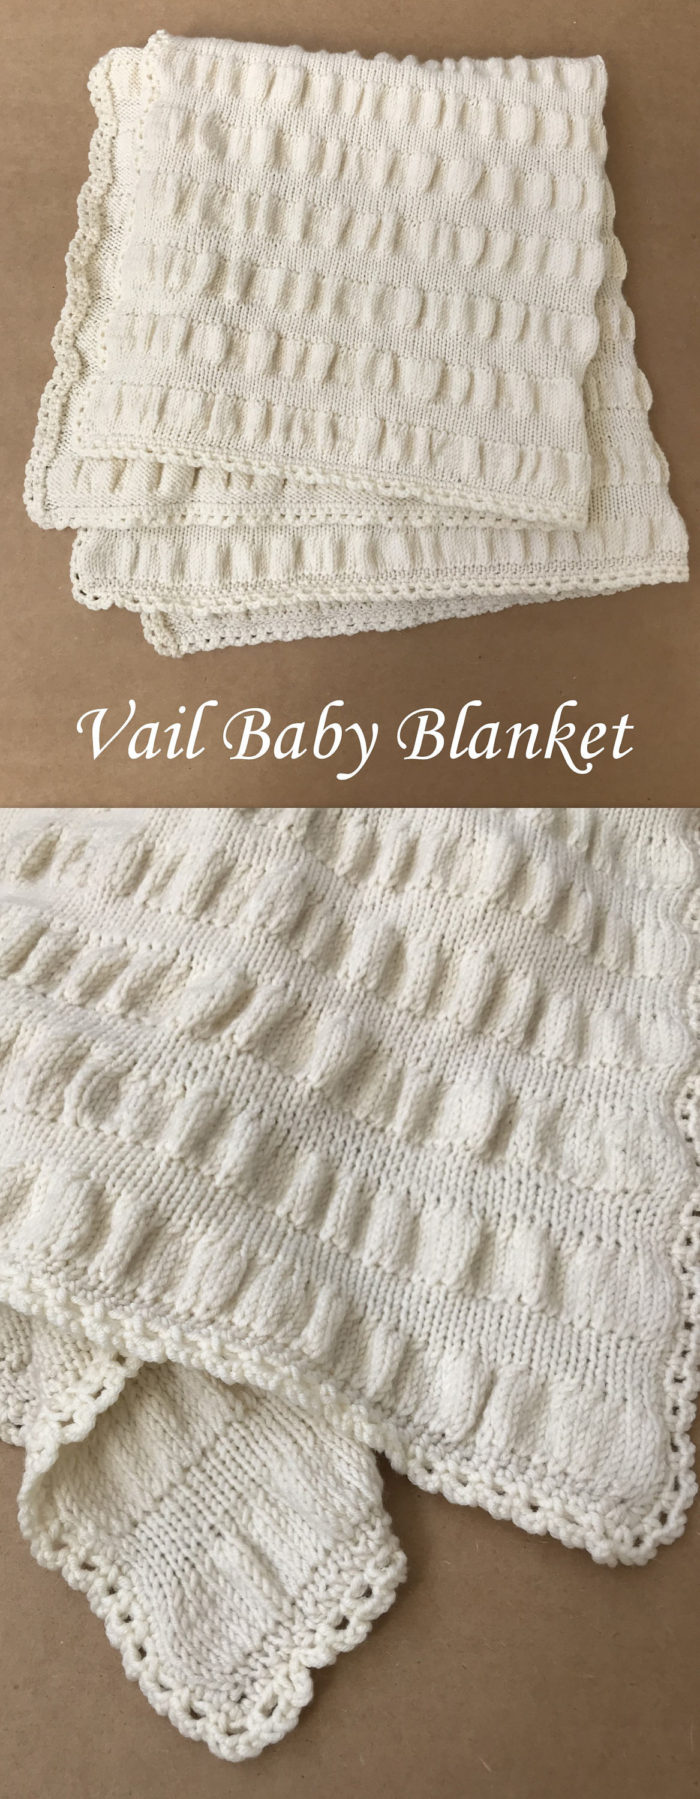 Knitting Pattern for Vail Baby Blanket